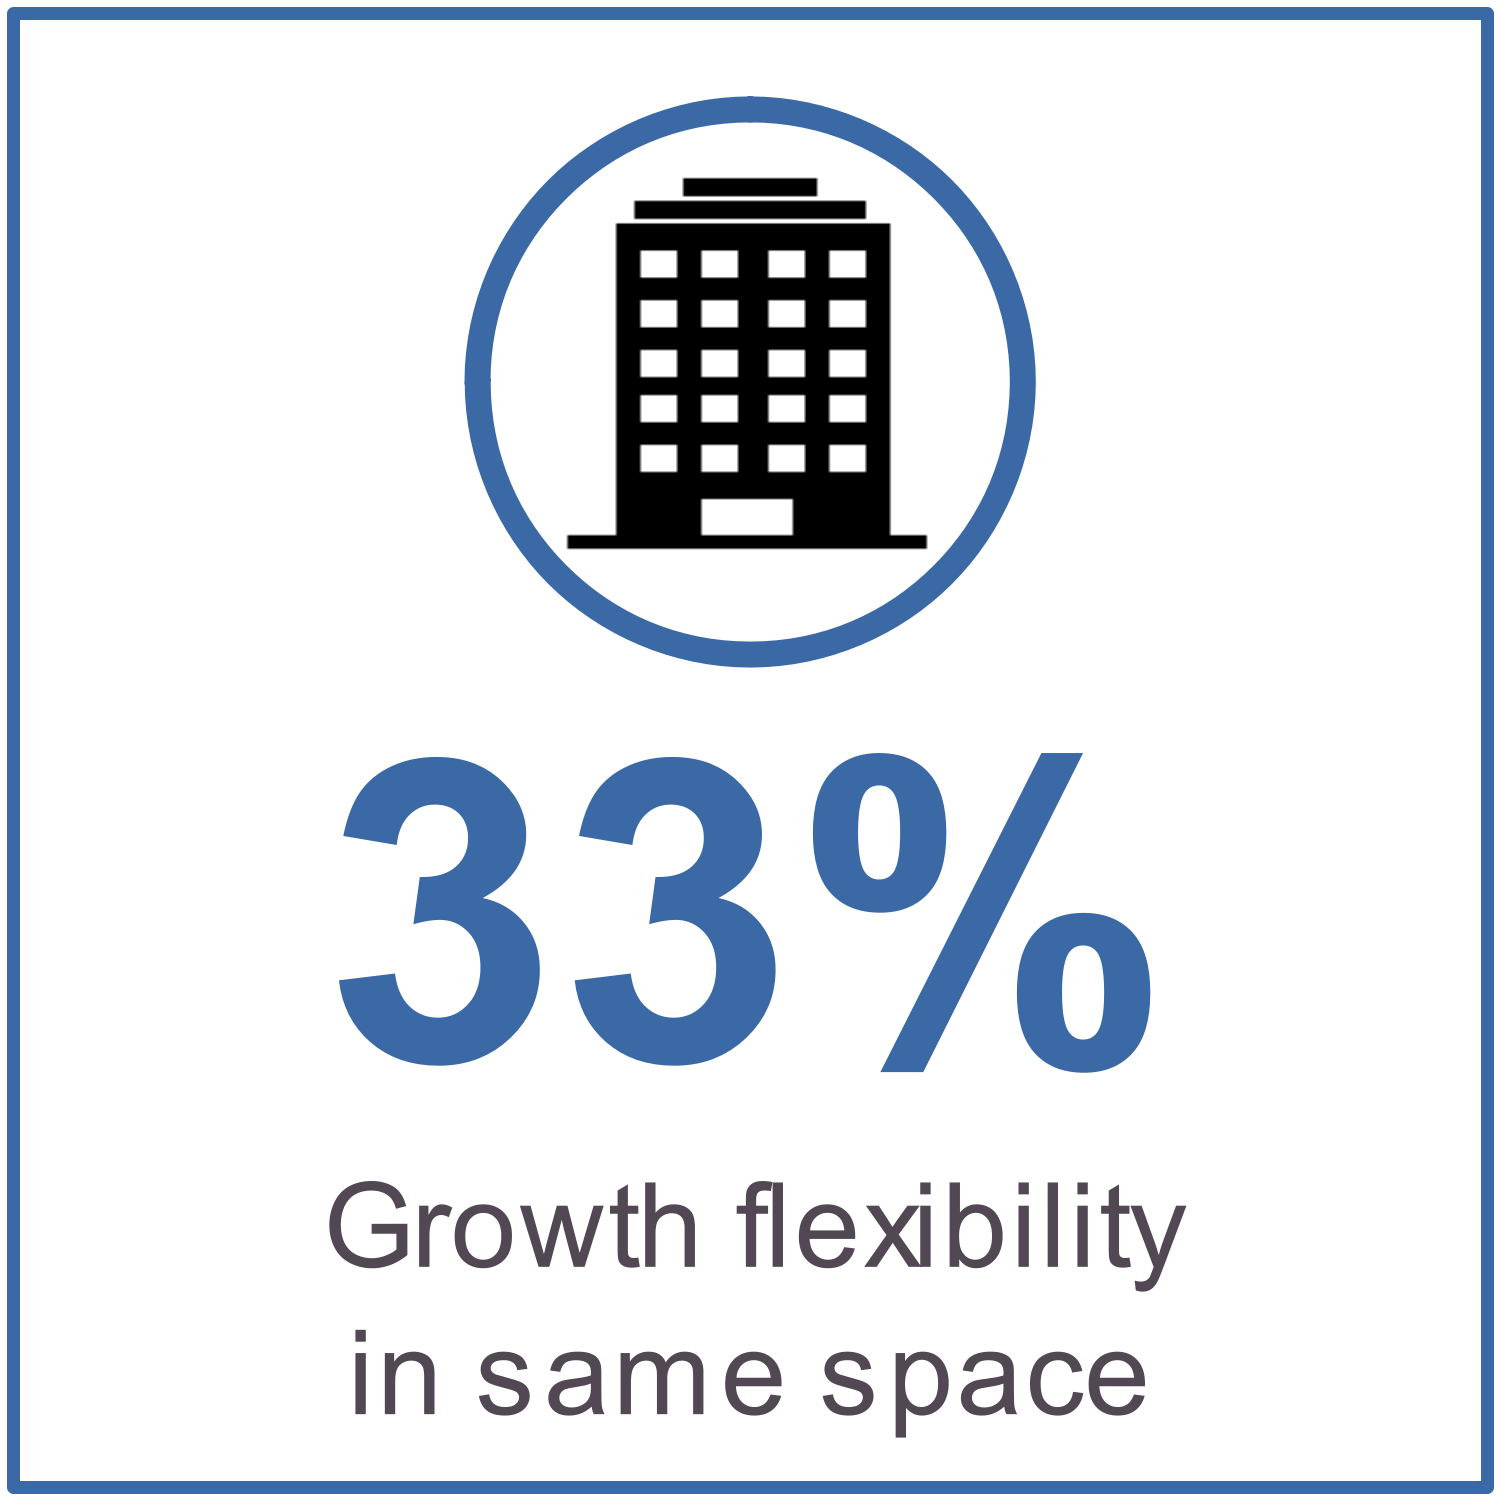 33% growth flexibility in same space